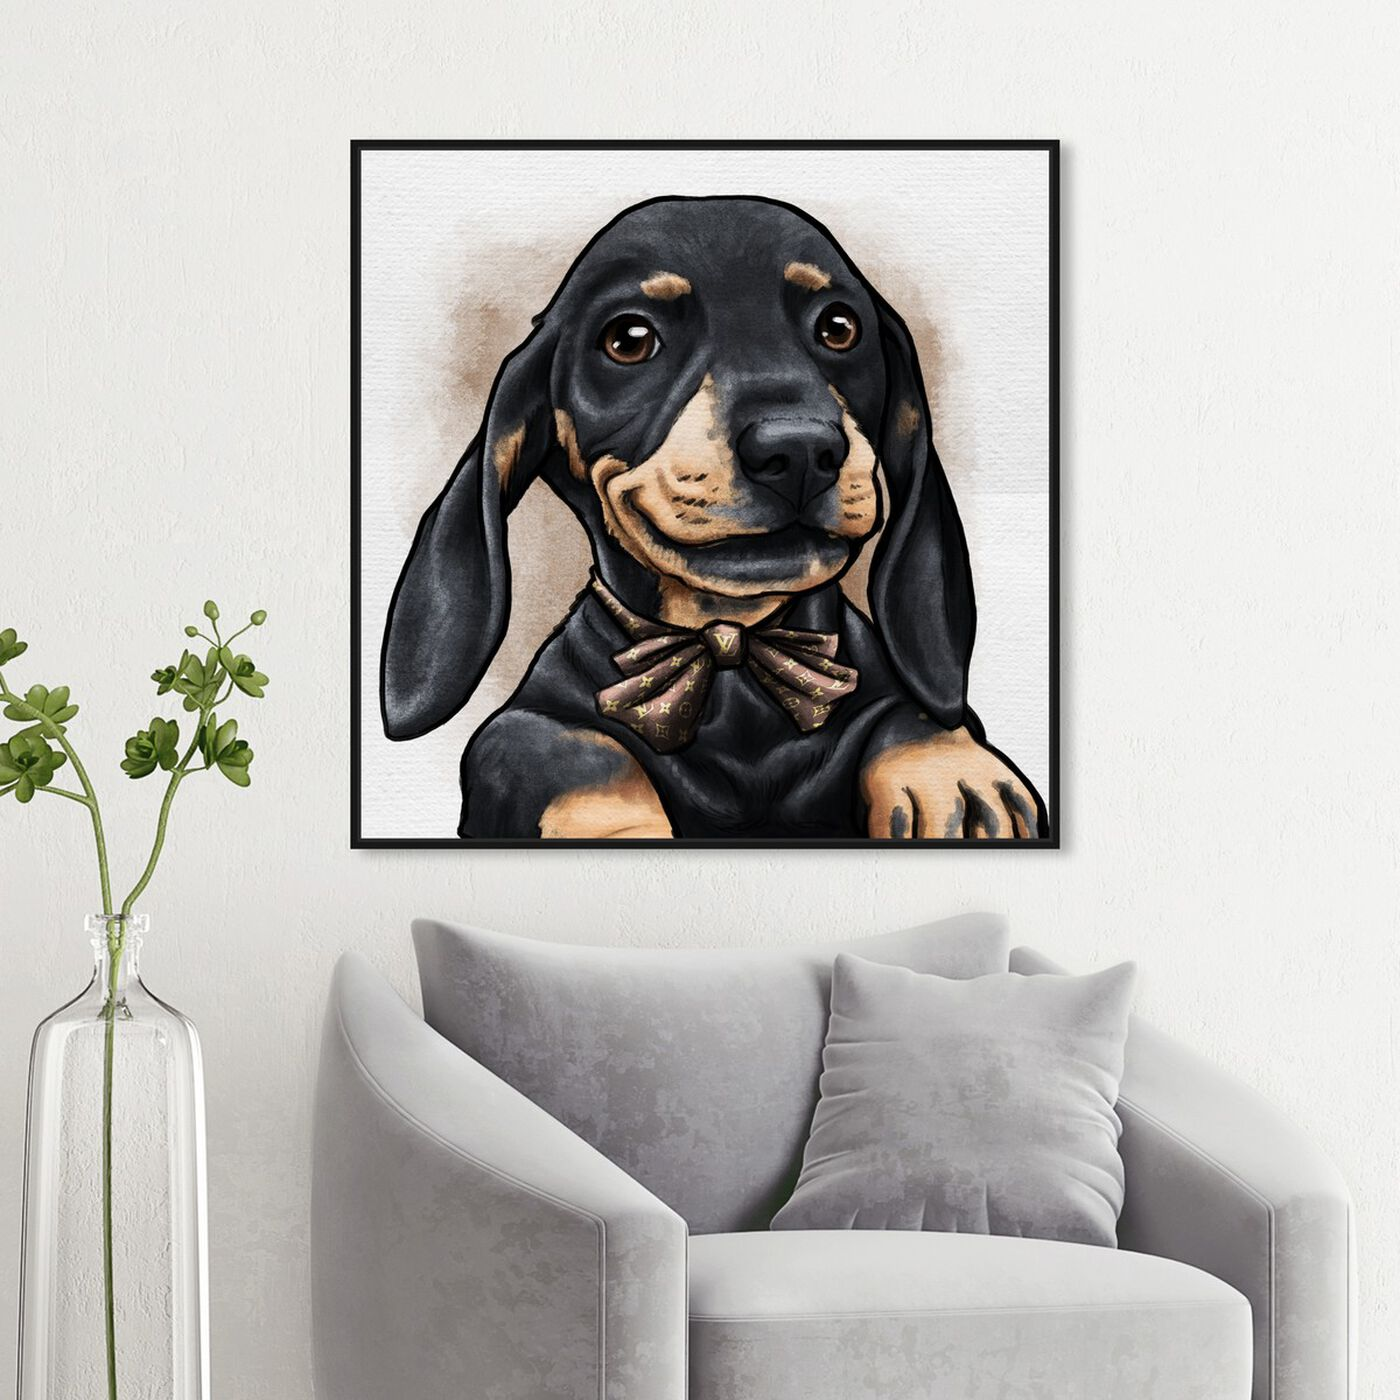 Hanging view of Dapper Dachshund featuring animals and dogs and puppies art.